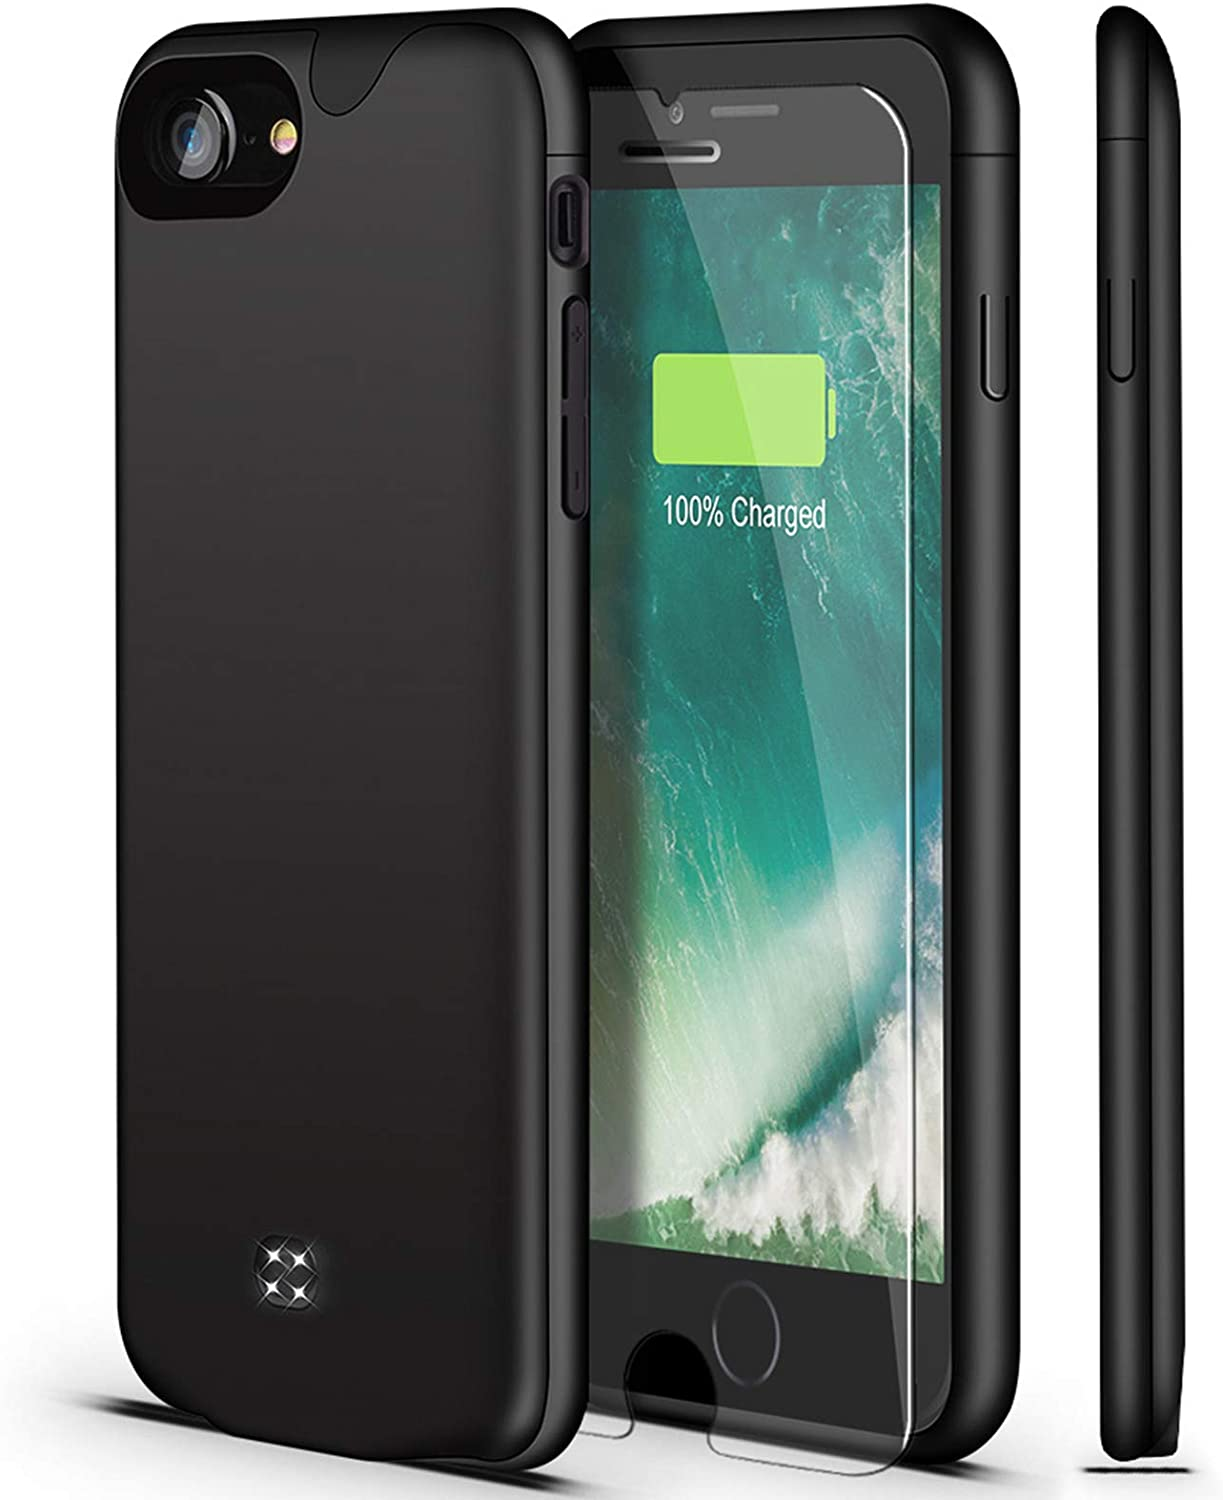 Amazon Com U Good Battery Case For Iphone 7 8 Se 2020 2nd Generation Ultra Slim Lightweight 3200mah Charging Case Rechargeable Extended Battery Pack Charger Case For Iphone 7 8 Se 2020 4 7 Inch Black